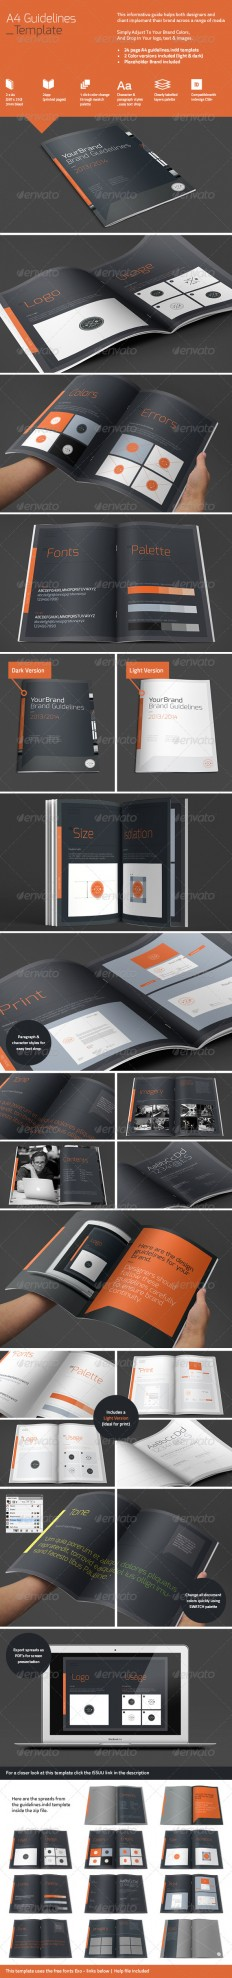 A4 Brand Guidelines | GraphicRiver